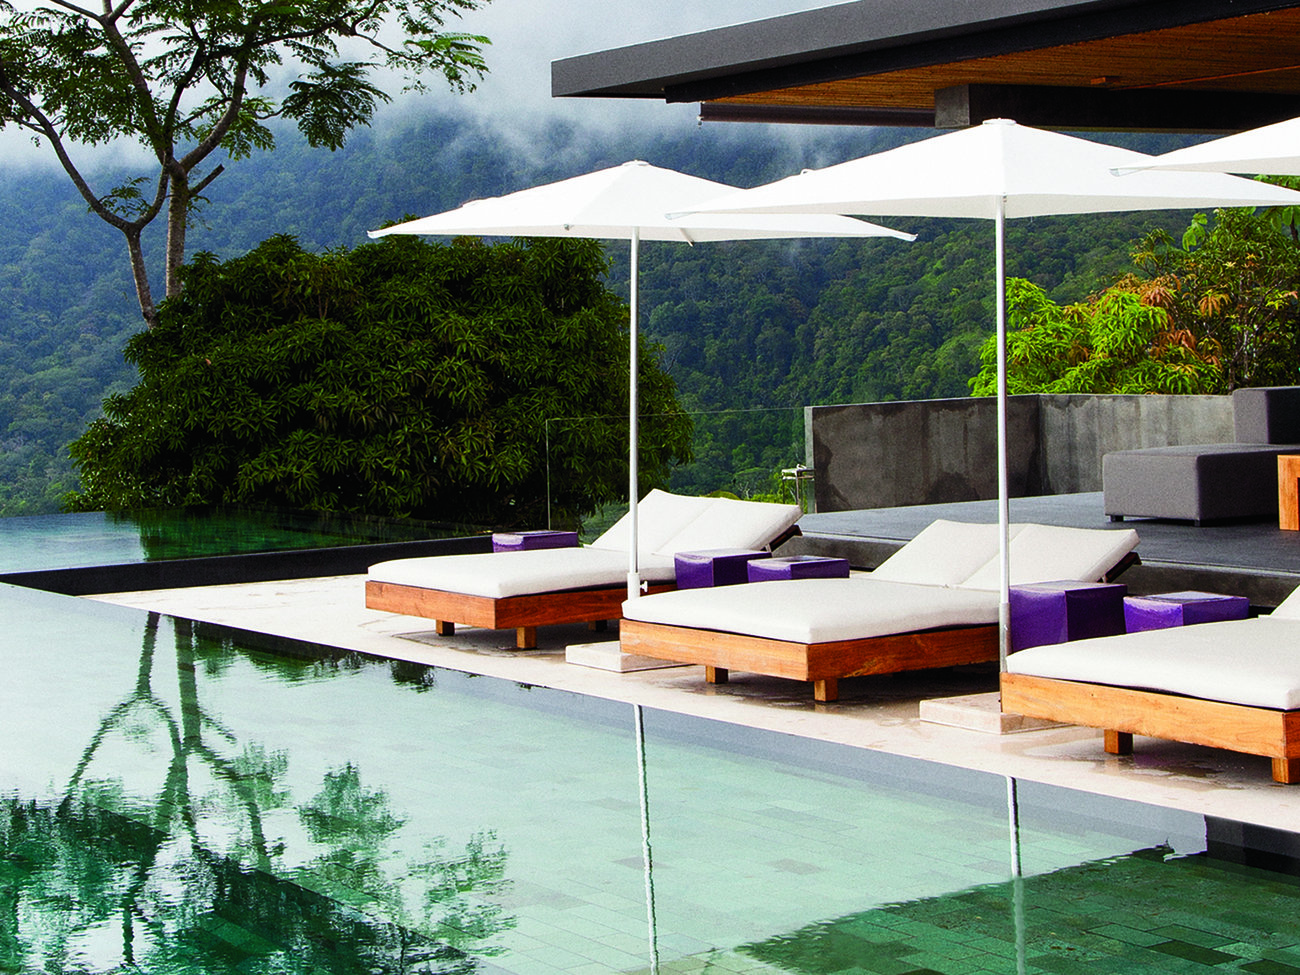 Kura Design Villas Hotel in Costa Rica